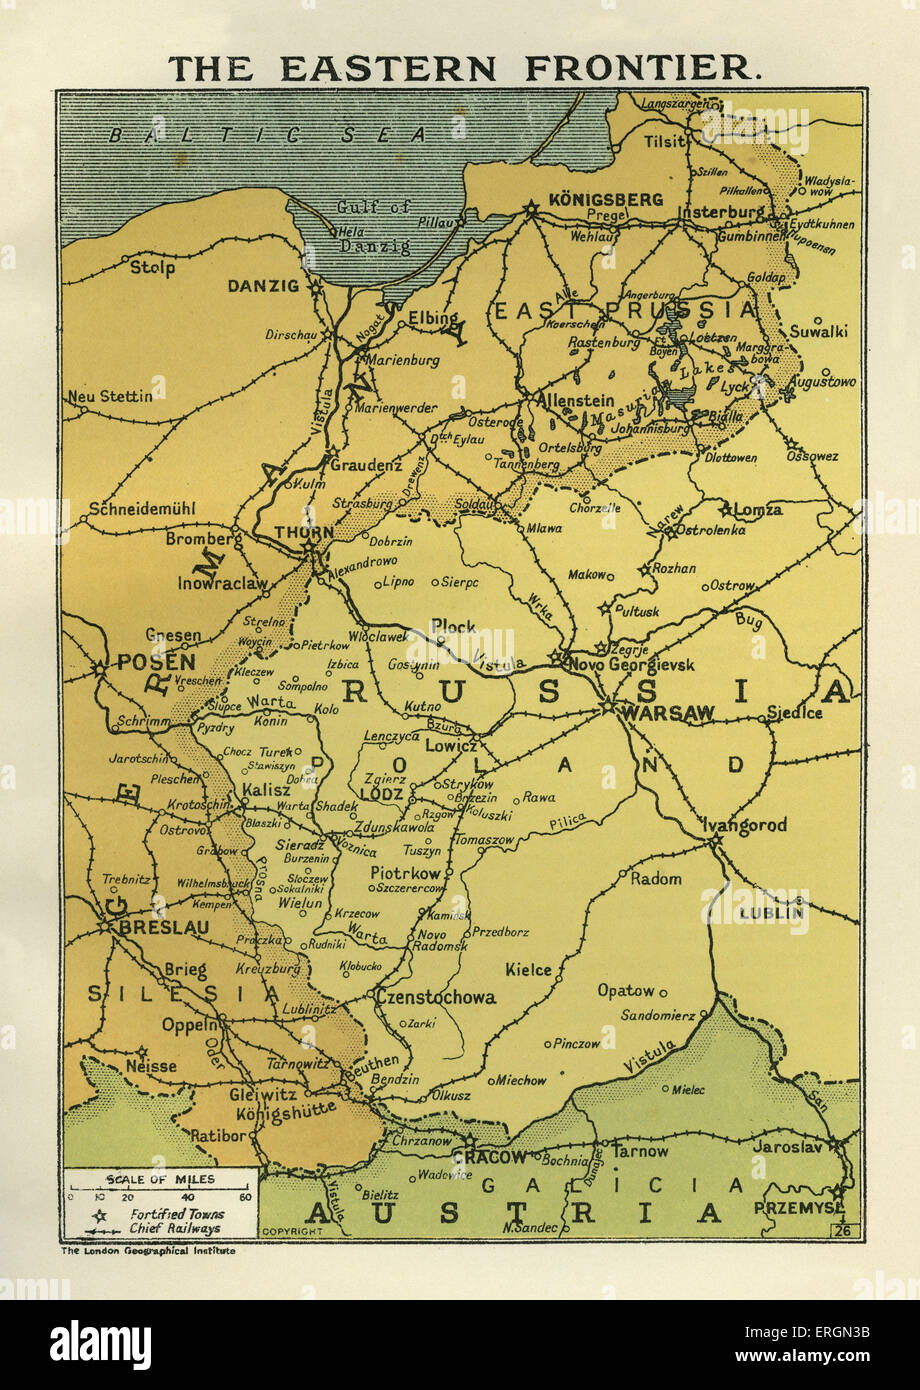 wwi map of the eastern frontier